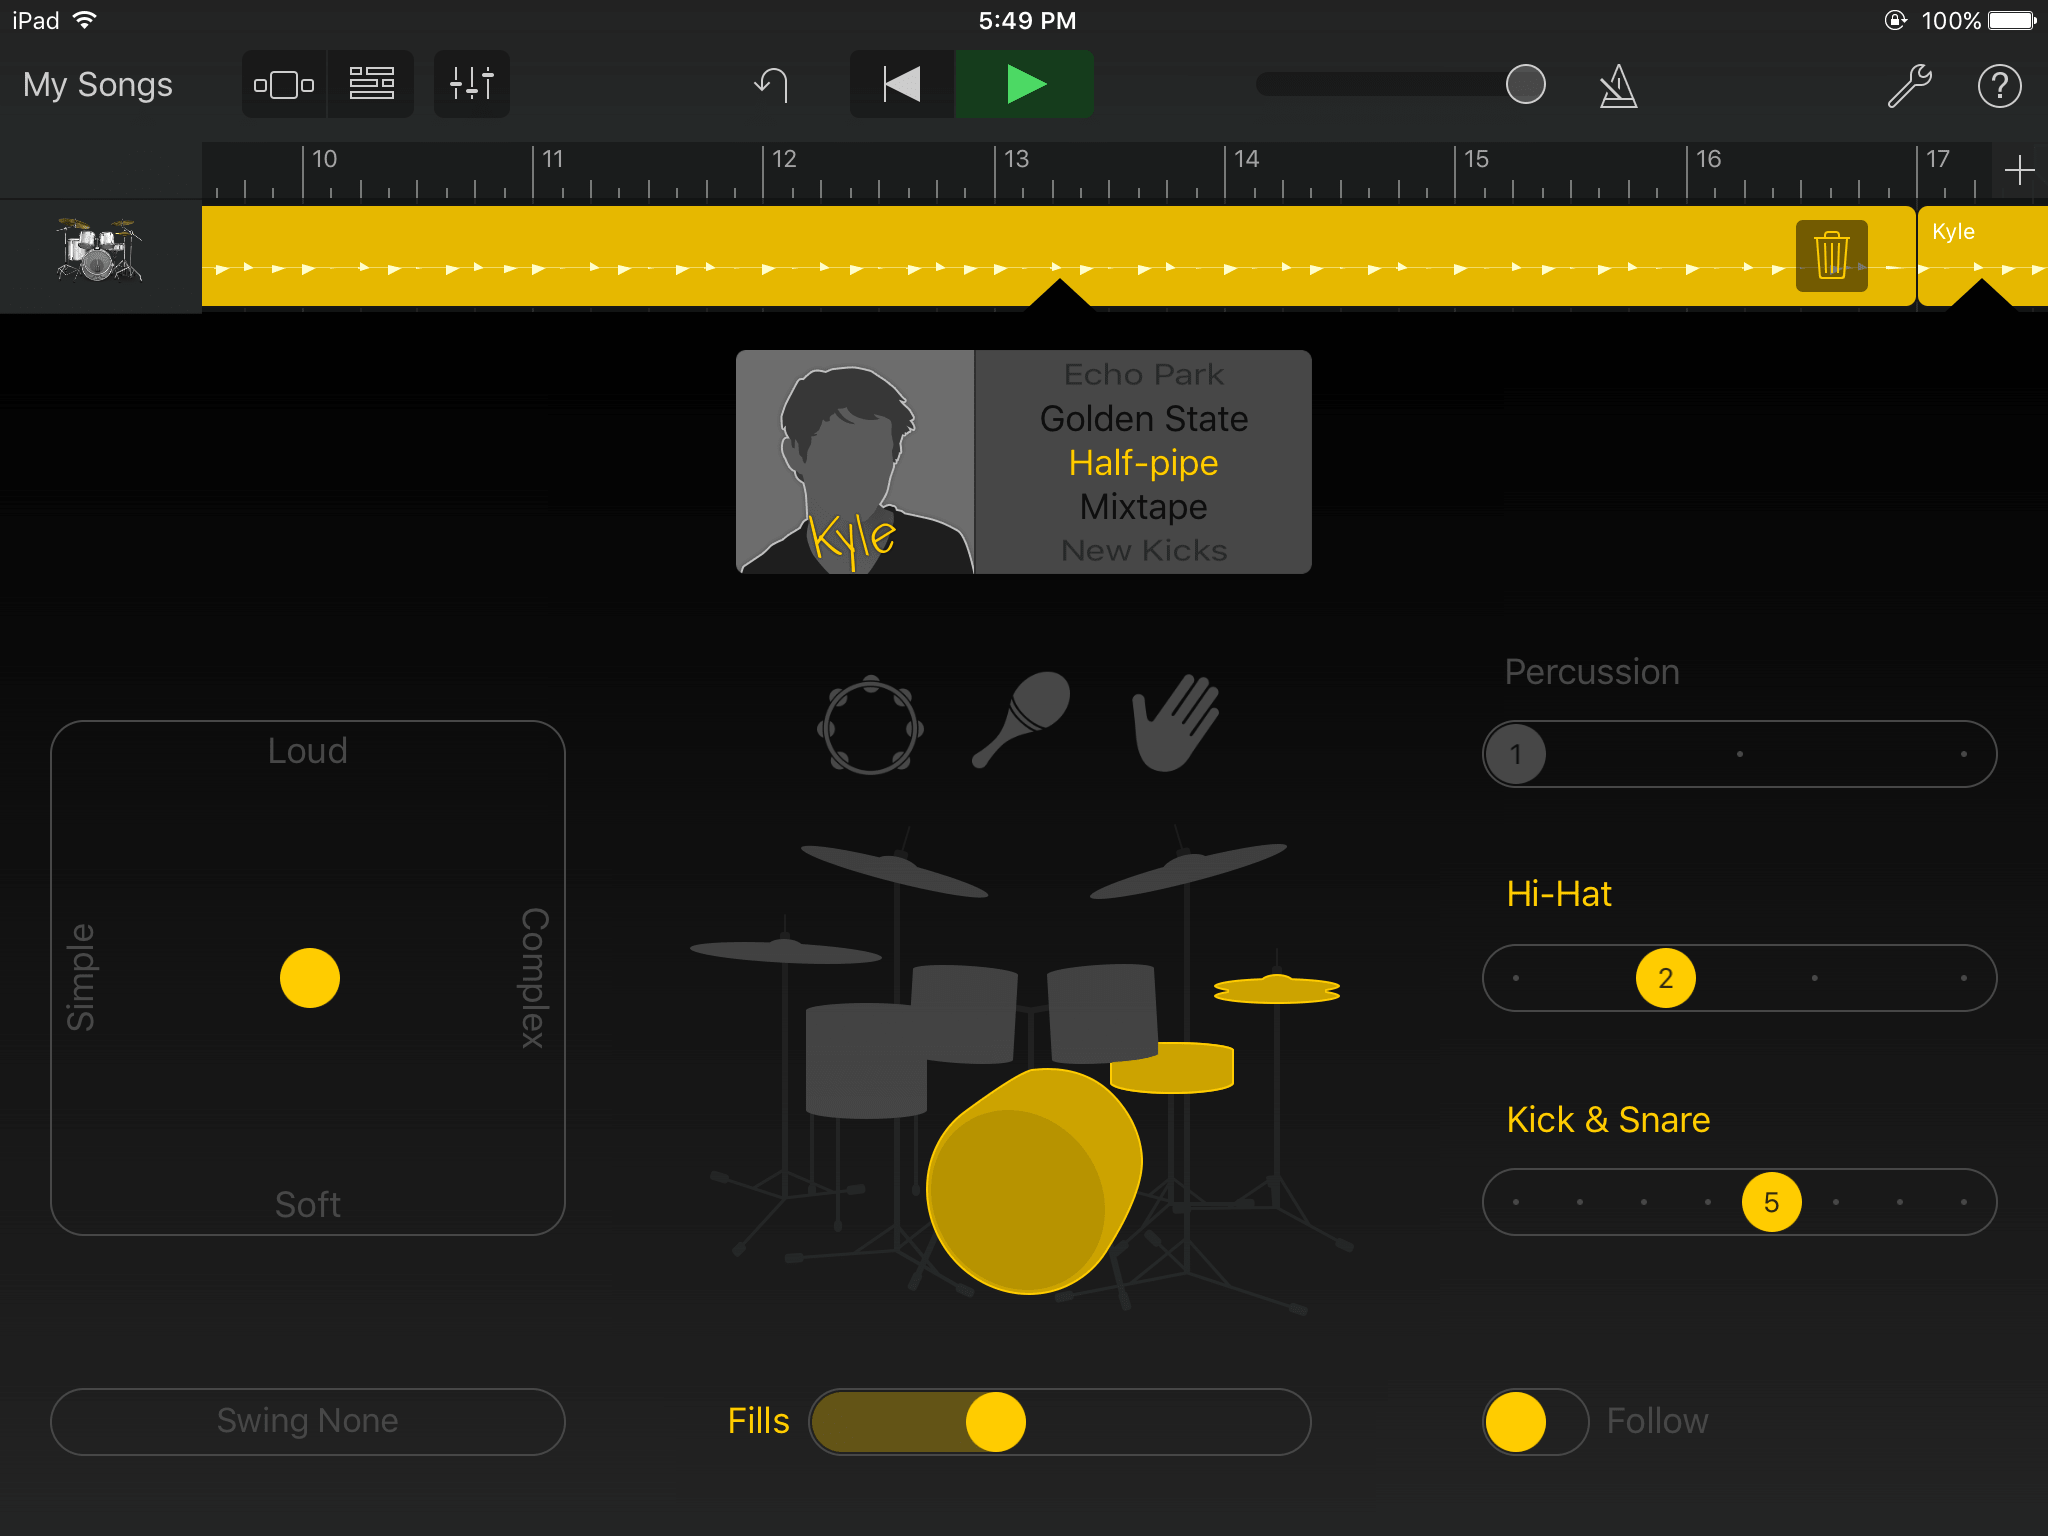 Garageband Beat Maker Learn How To Use Apple Garageband App On Ipad To Make Your